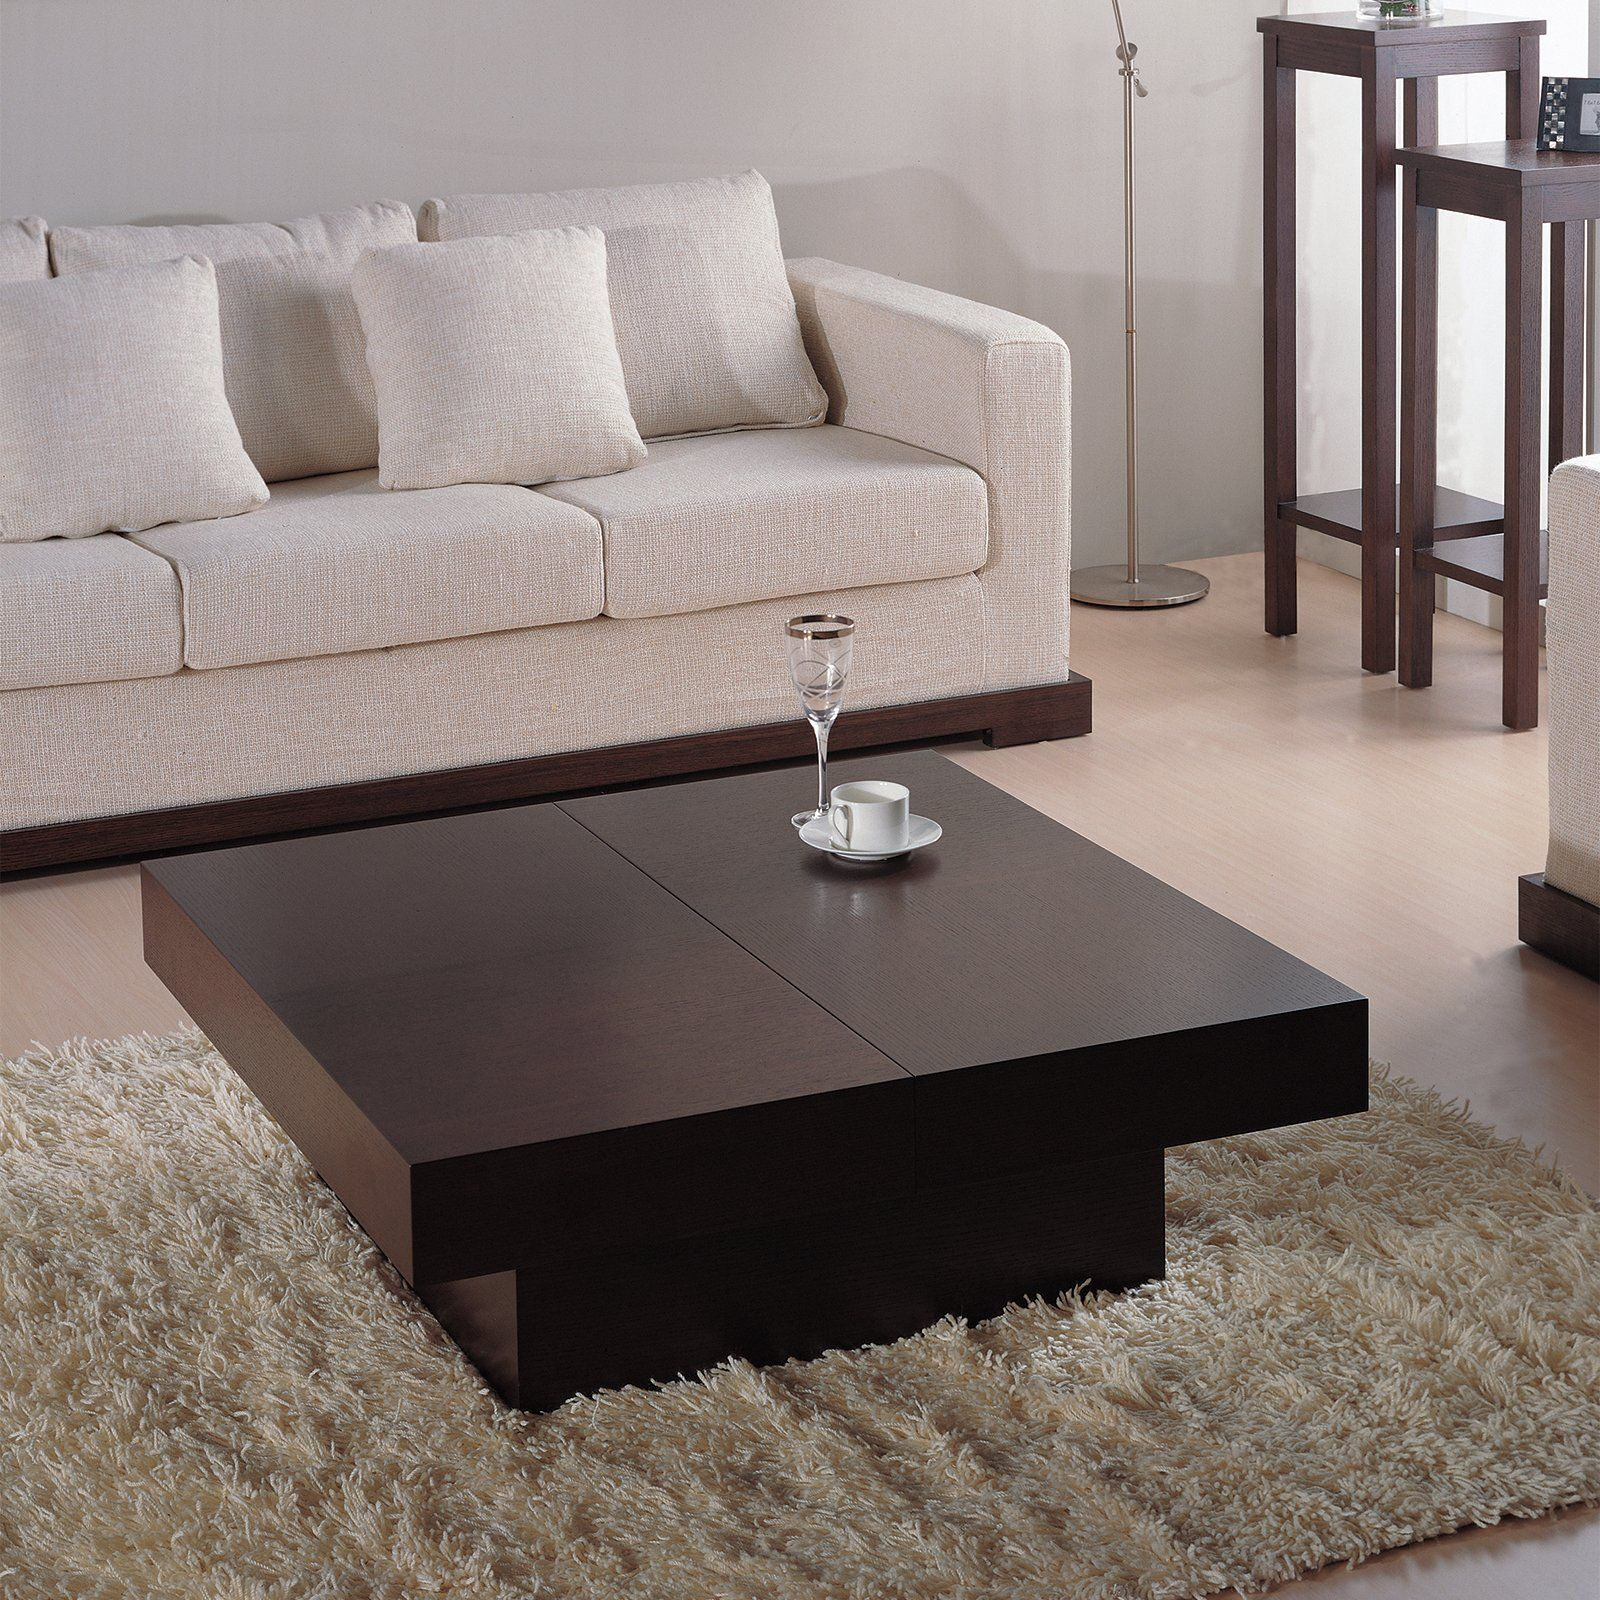 Nile Square Coffee Table Dark Brown Oak 538 00